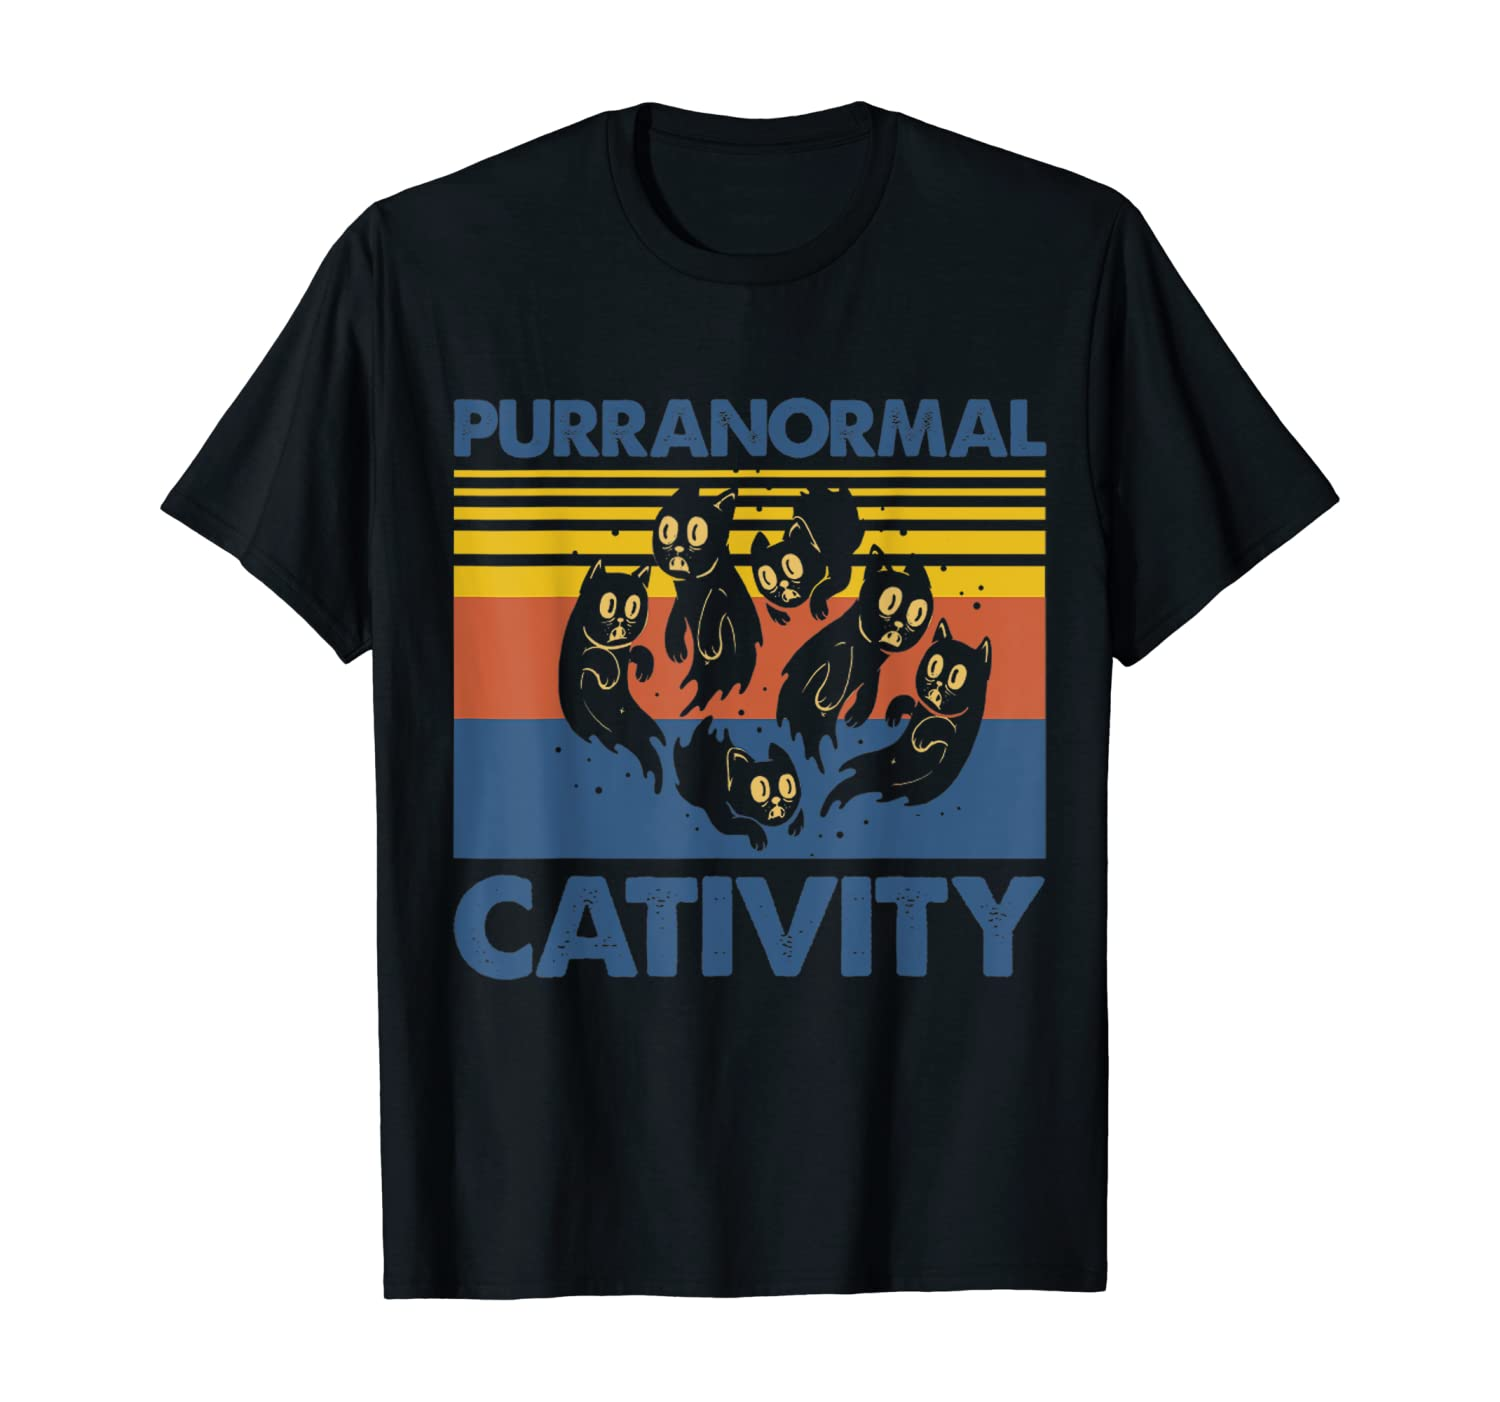 Purranormal Cativity Vintage Halloween Ghost Cats T-Shirt